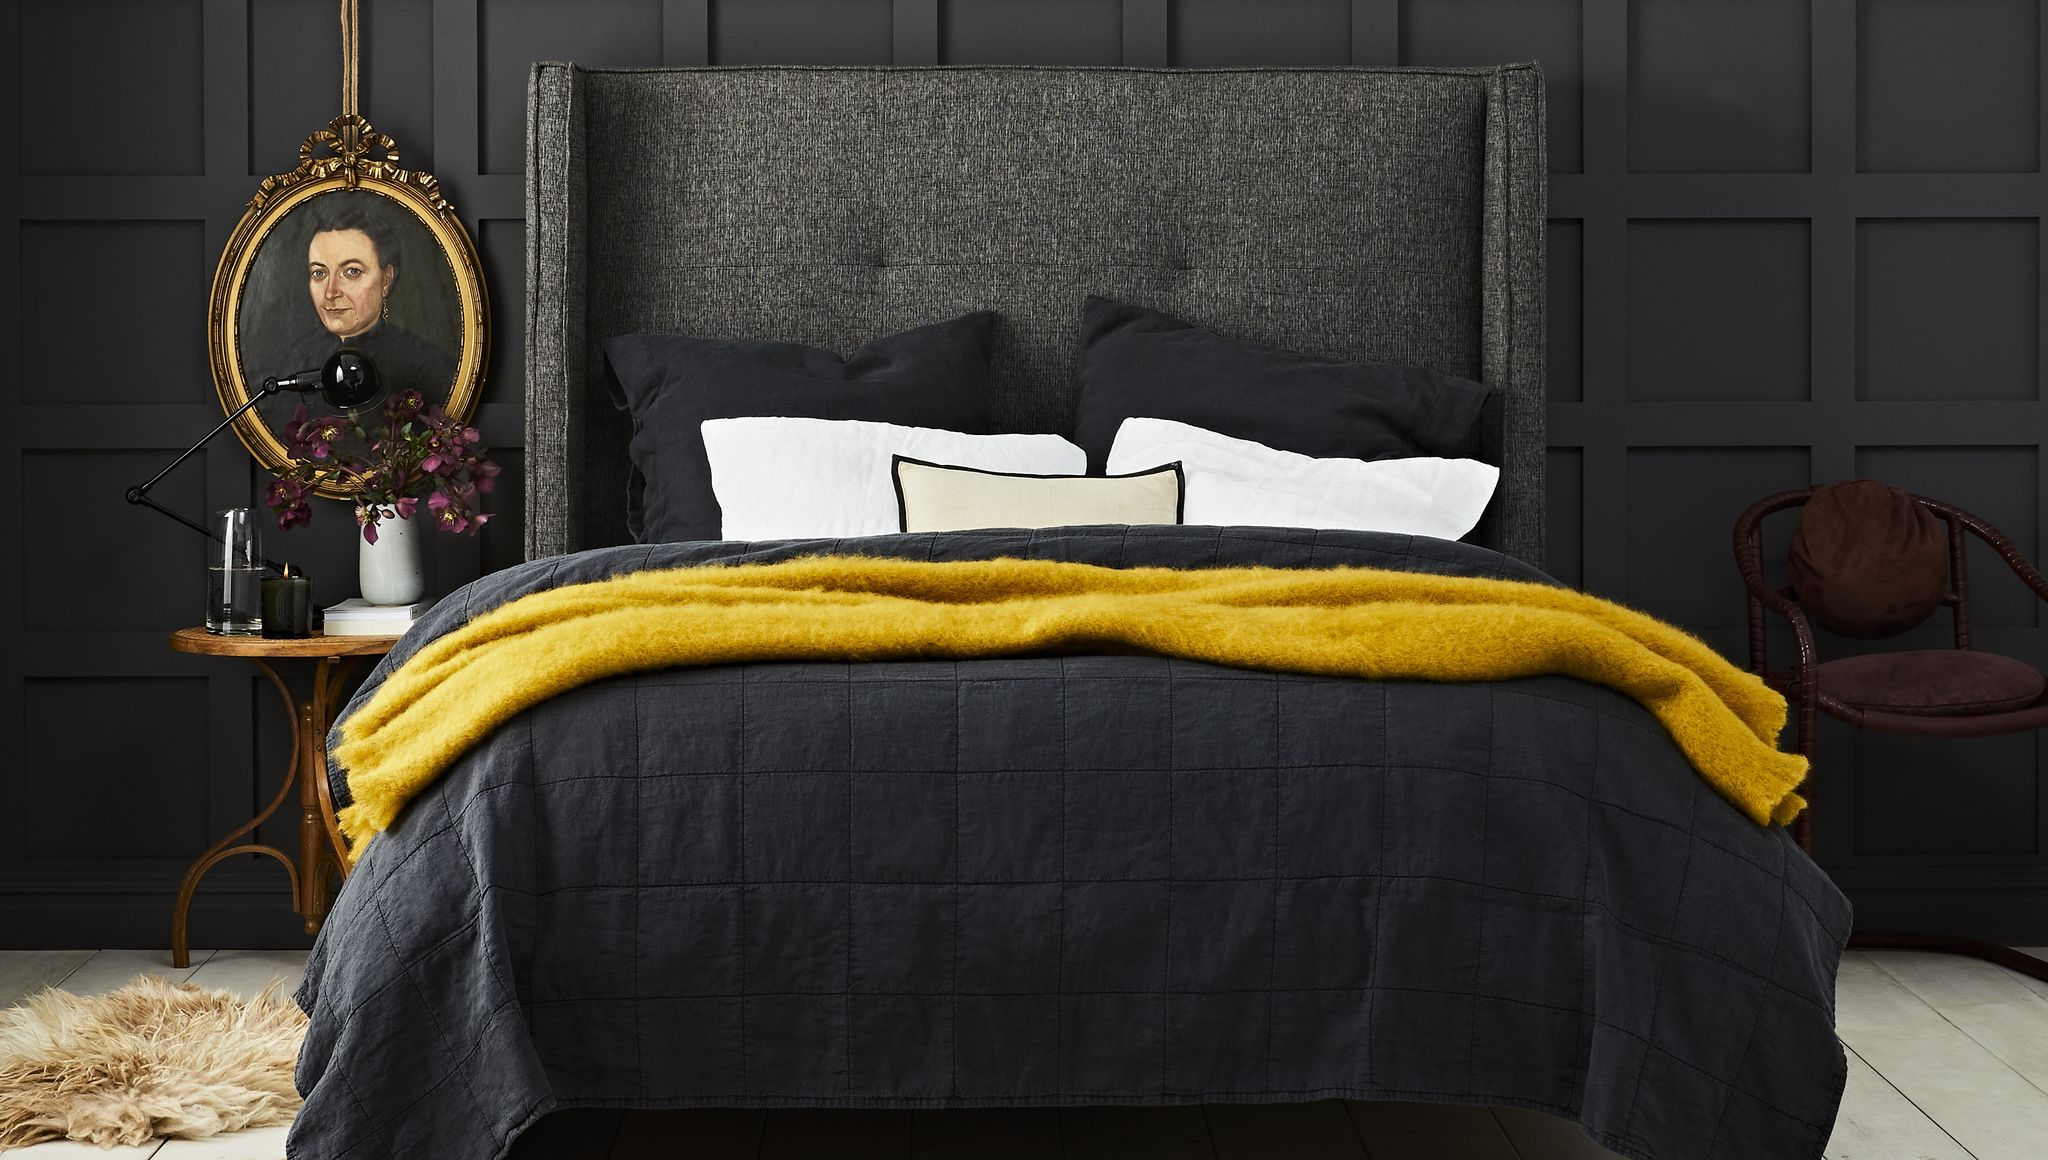 How to Design Your Bedroom for Better Sleep, According to an Interior Designer